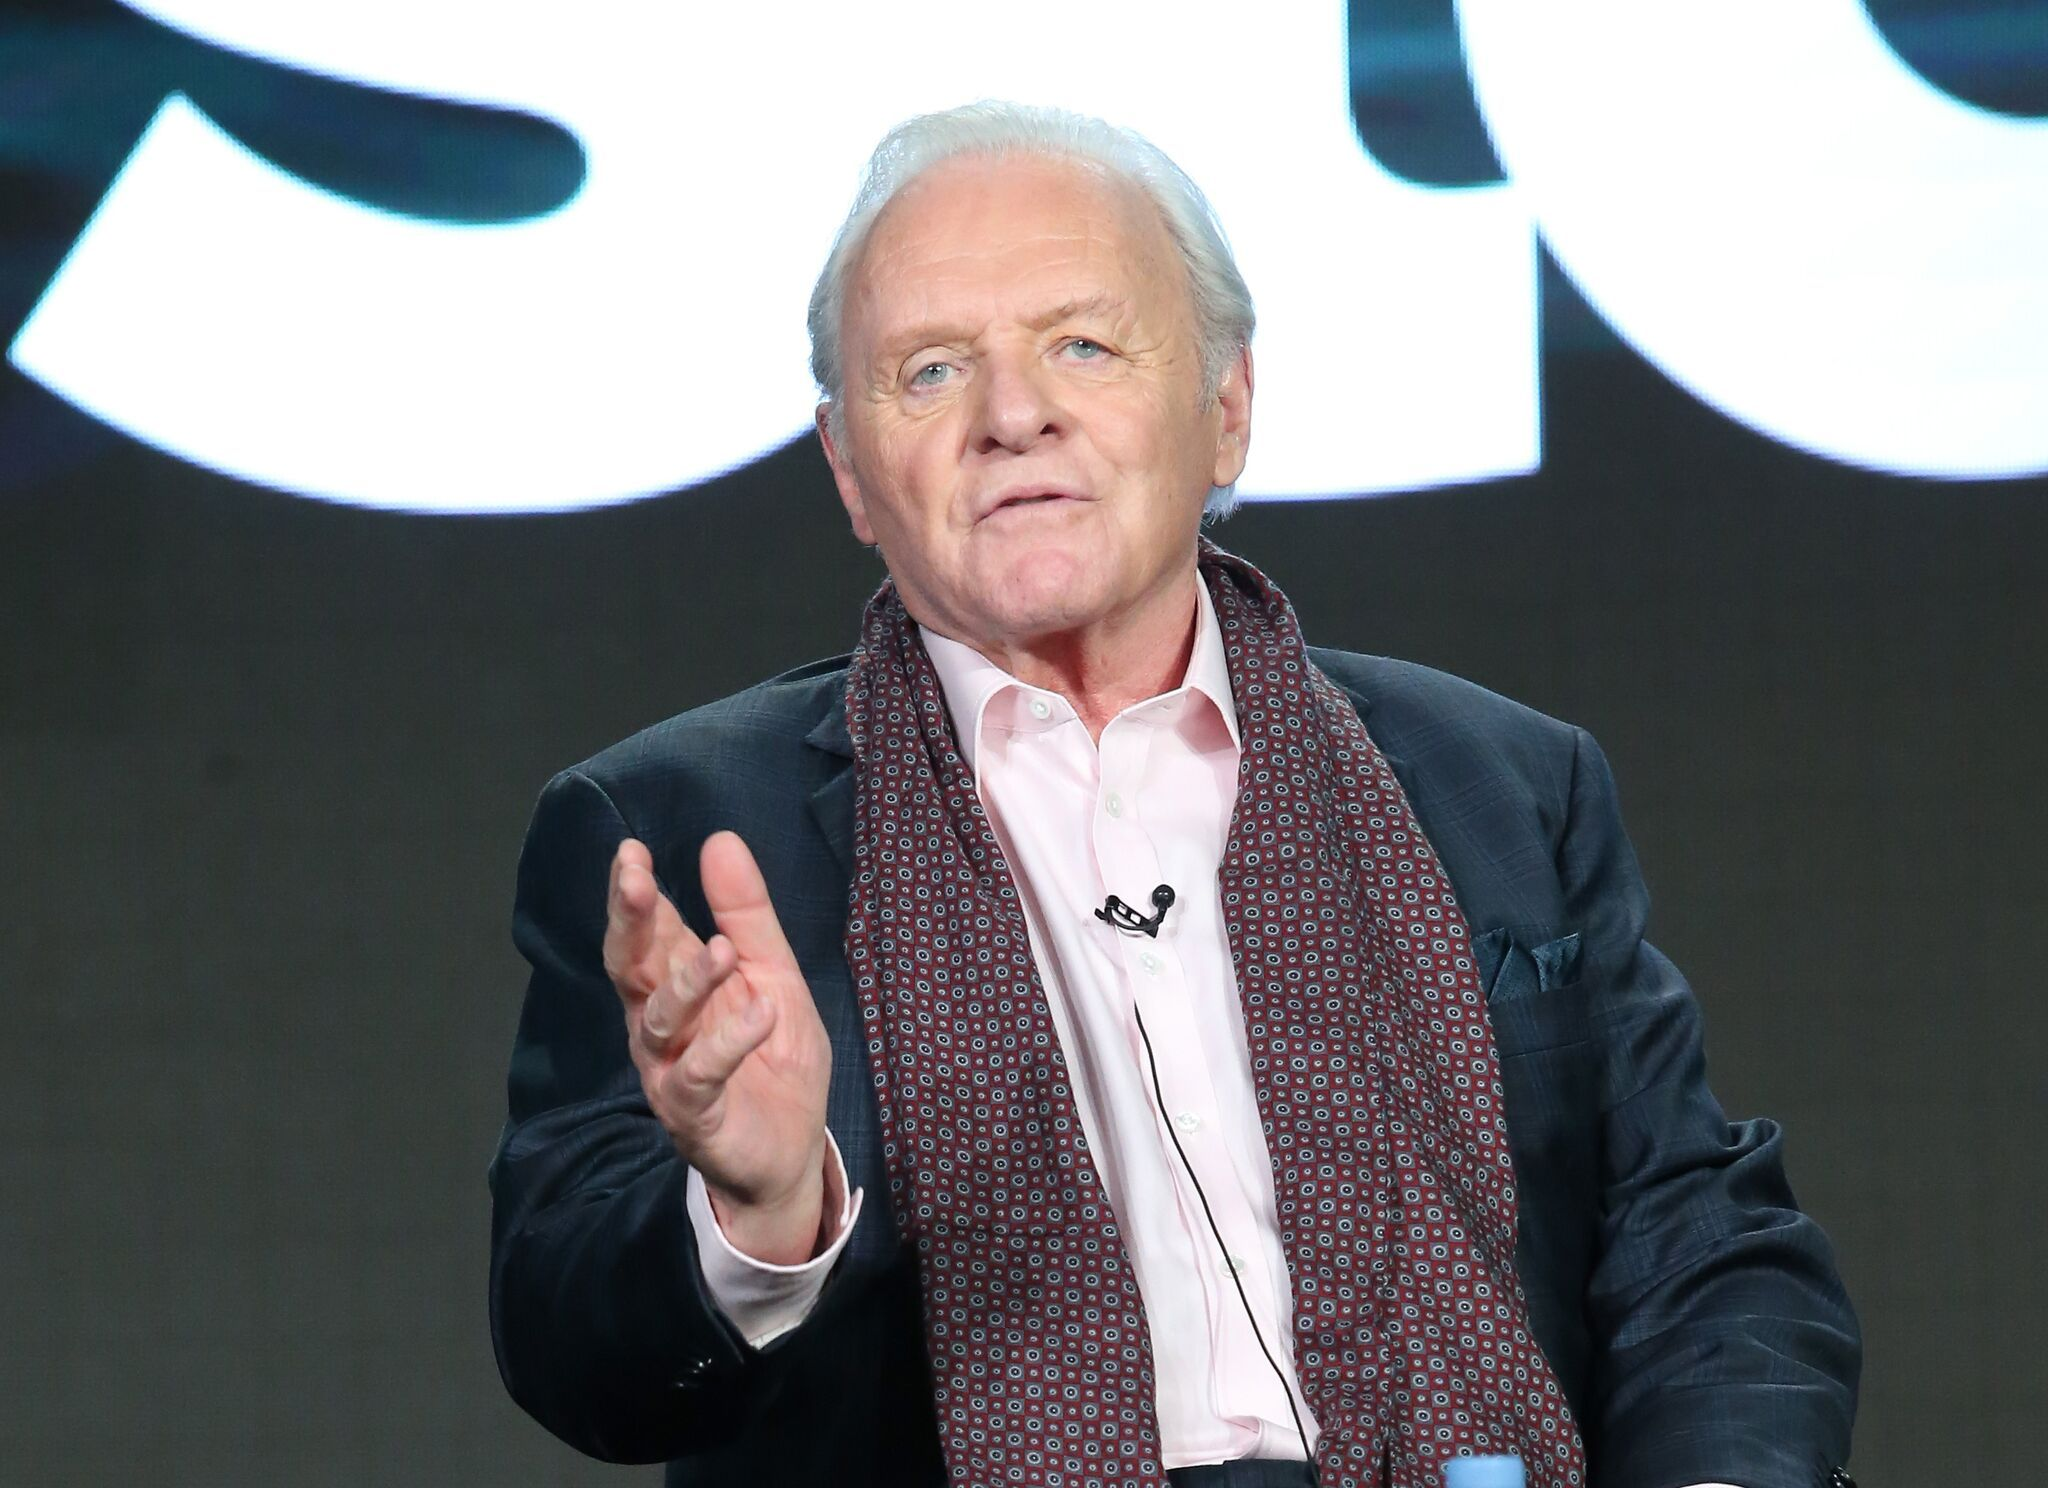 Anthony Hopkins at The Dresser panel as part of the Starz portion of This is Cable Television Critics Association Winter Tour on January 8, 2016, in Pasadena, California.   Source: Getty Images